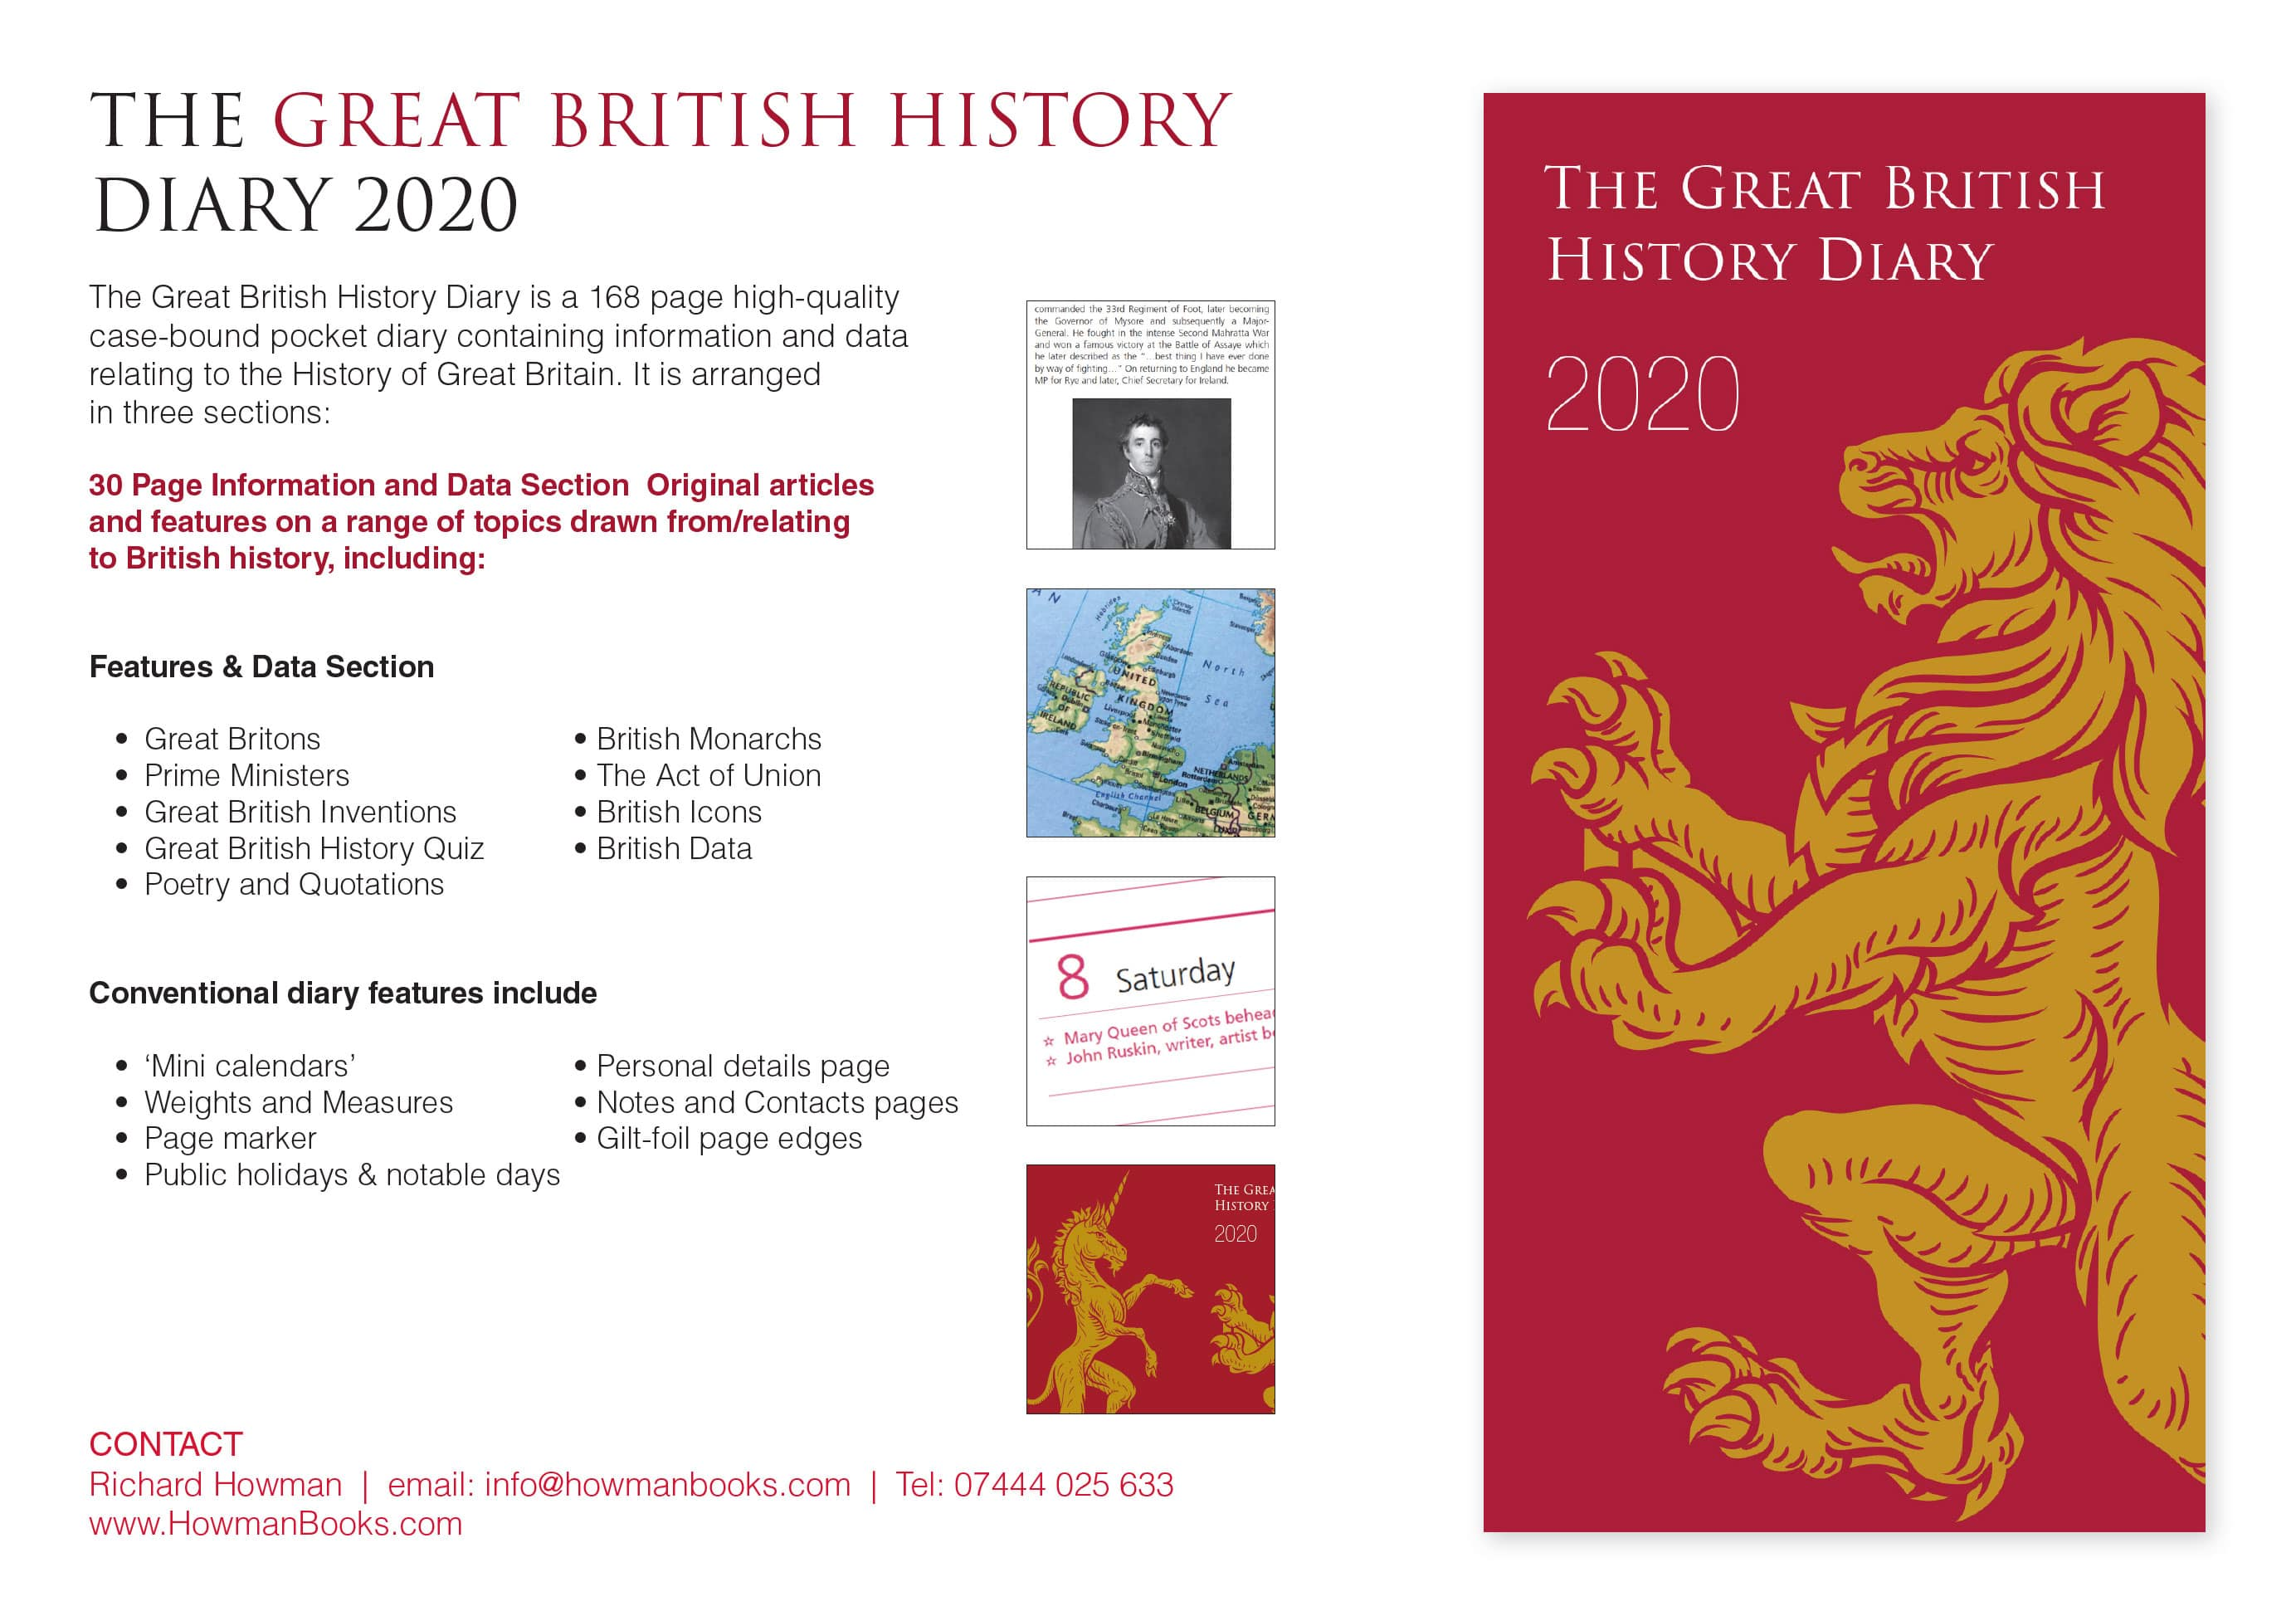 The Great British History Diary 2020